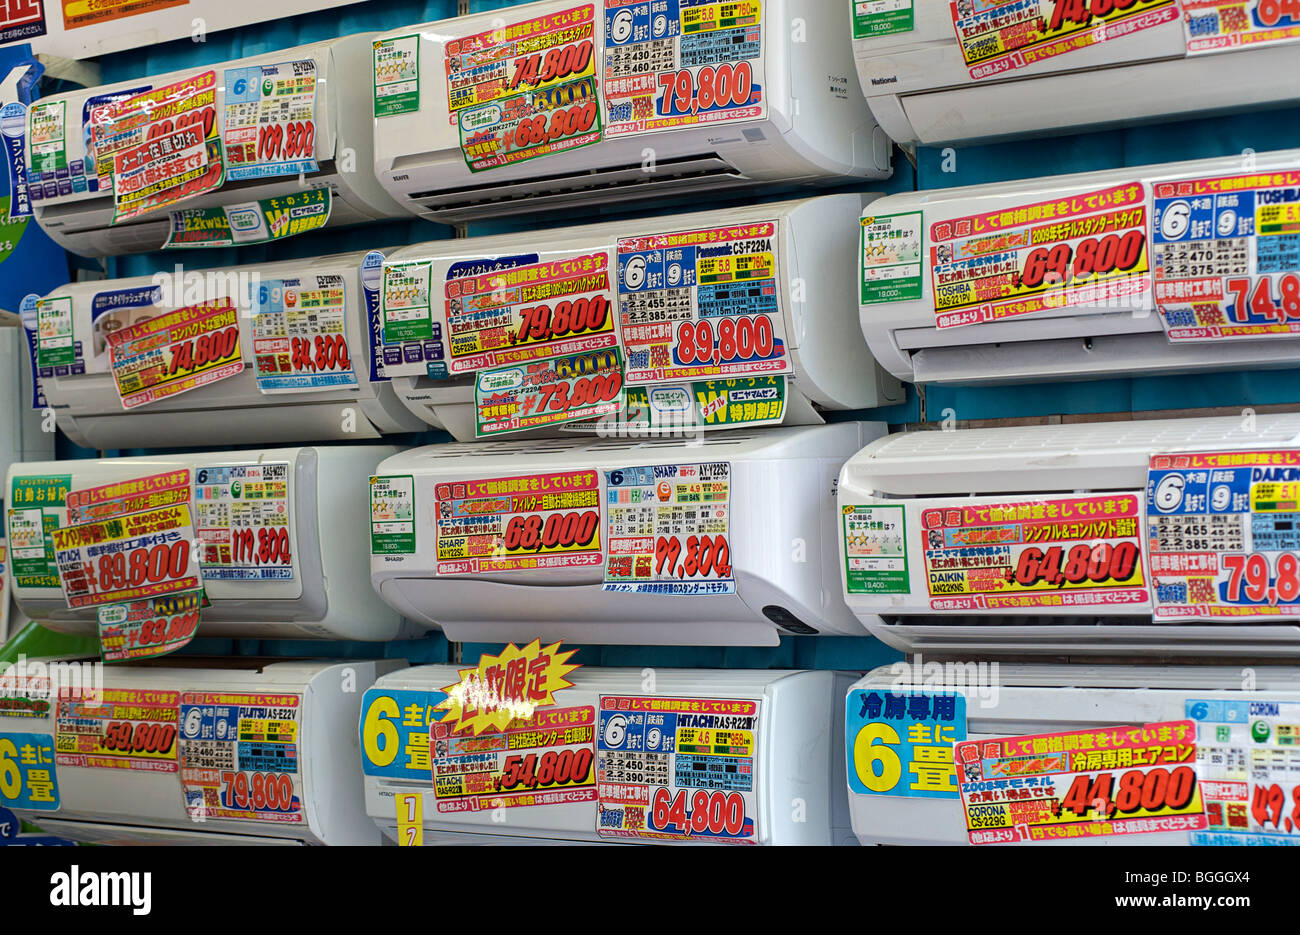 Air conditioning units for sale in an electrical store in Japan ...